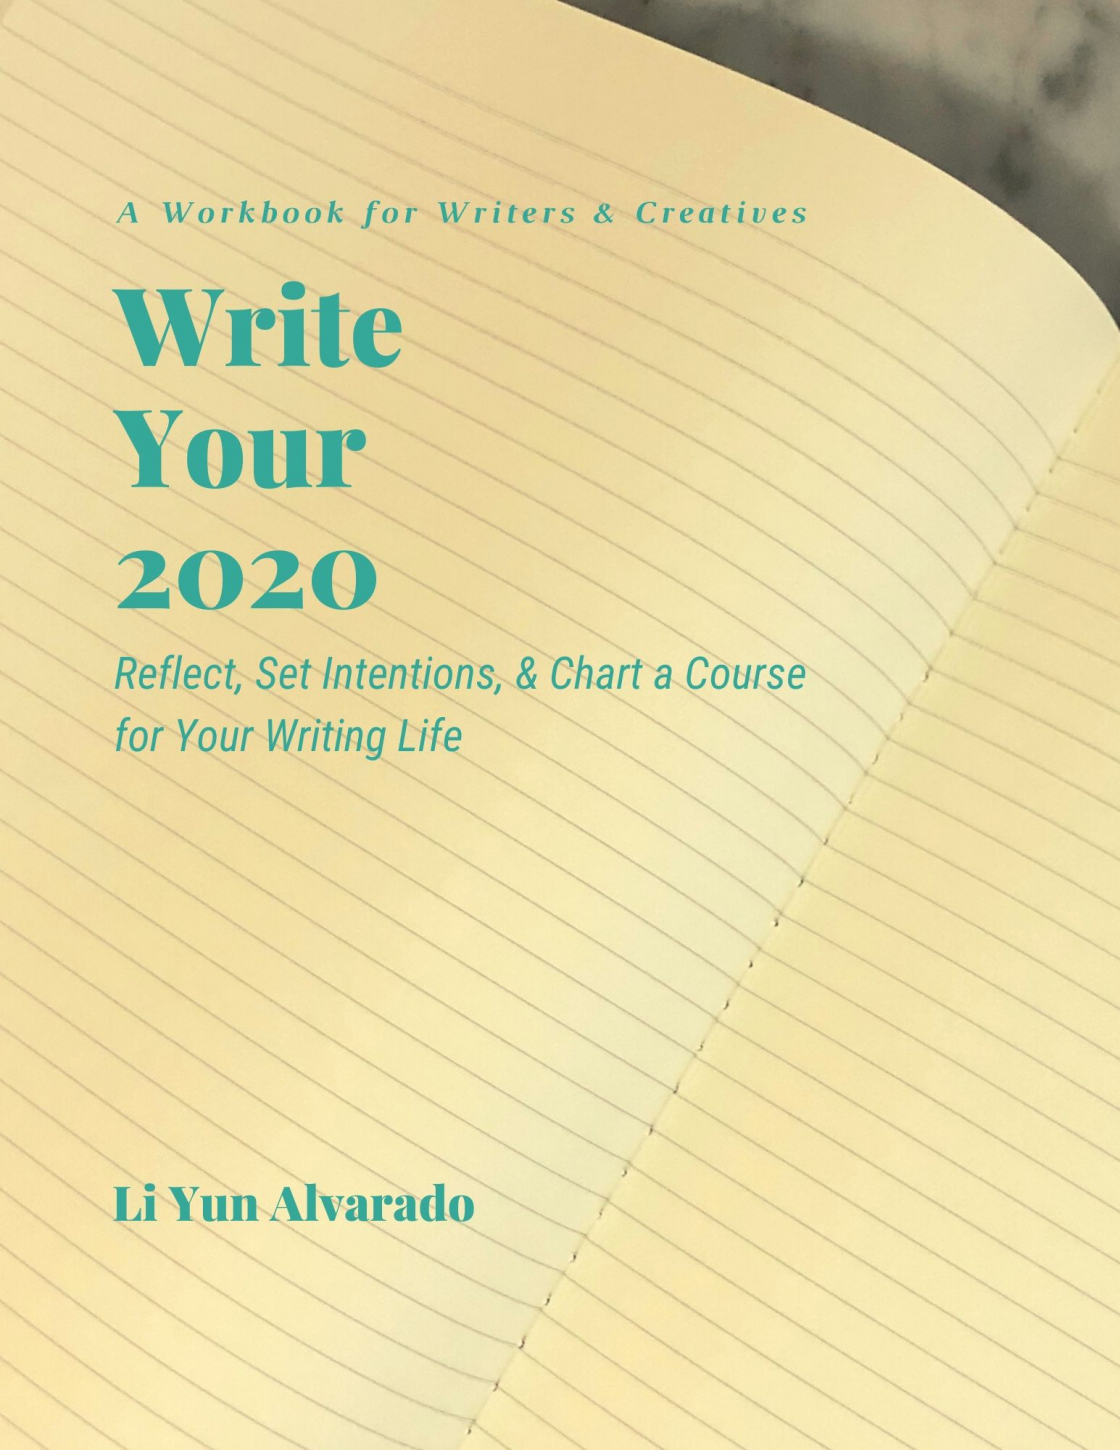 Write Your 2020 Workbook: Reflect, Set Intentions, & Chart a Course for your Writing Life